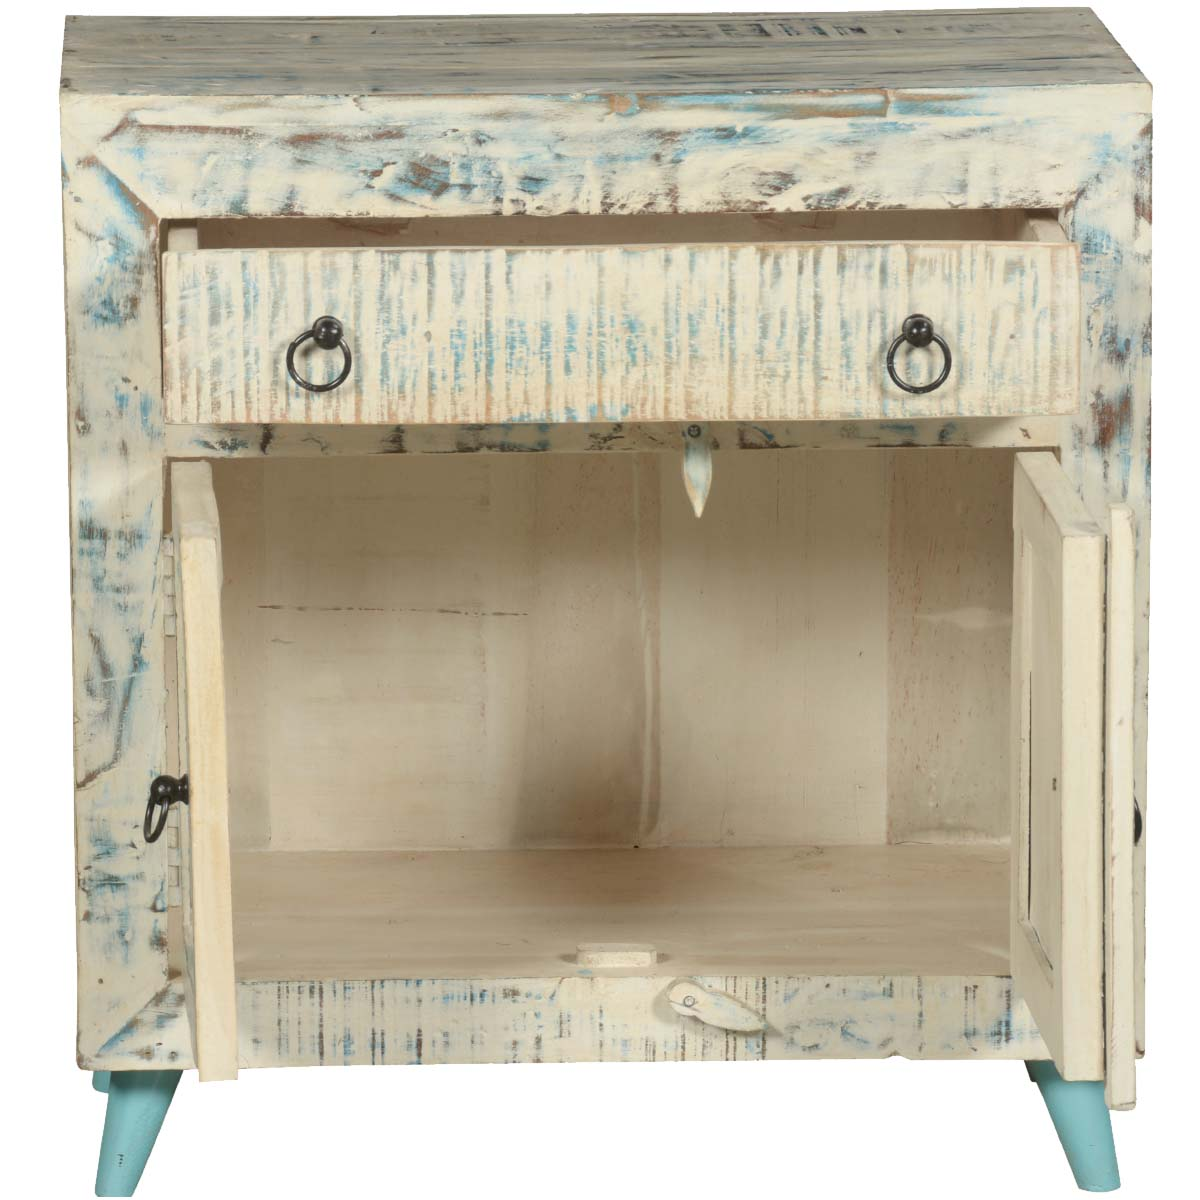 Marvelous photograph of  White Washed Reclaimed Wood Freestanding Rustic Buffet Cabinet with #8D783E color and 1200x1200 pixels